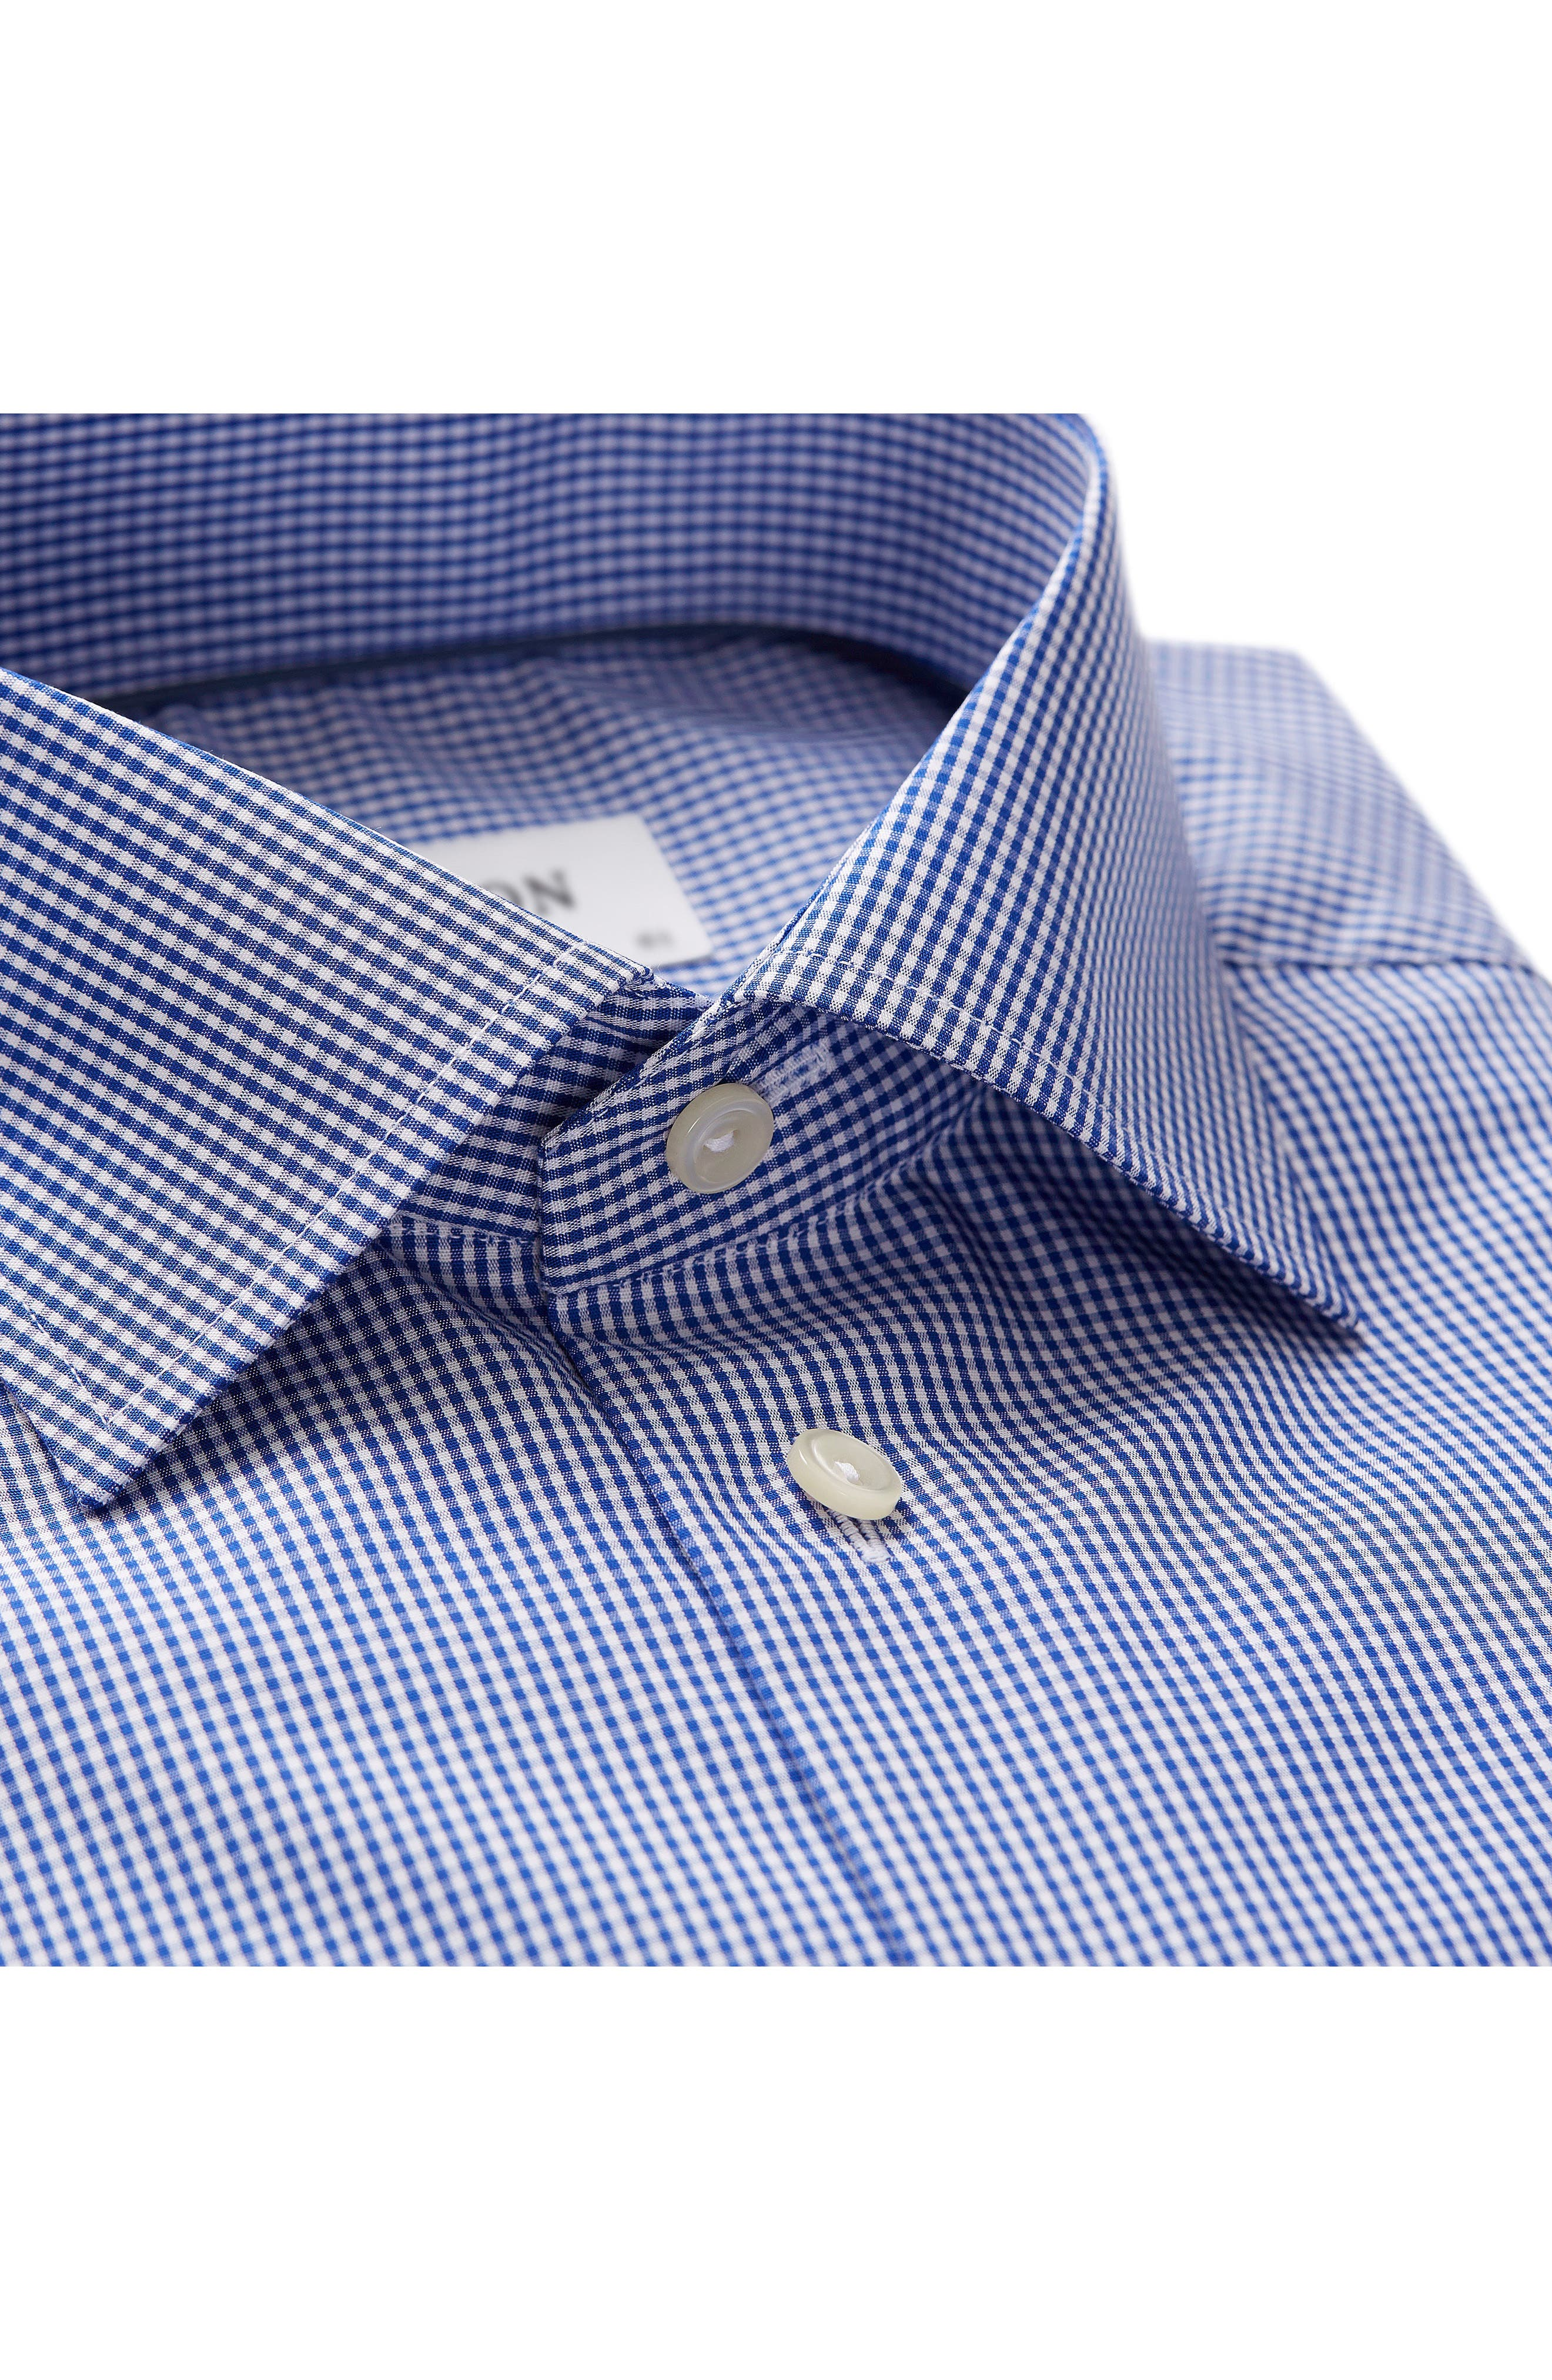 Contemporary Fit Check Dress Shirt,                             Alternate thumbnail 3, color,                             MID BLUE